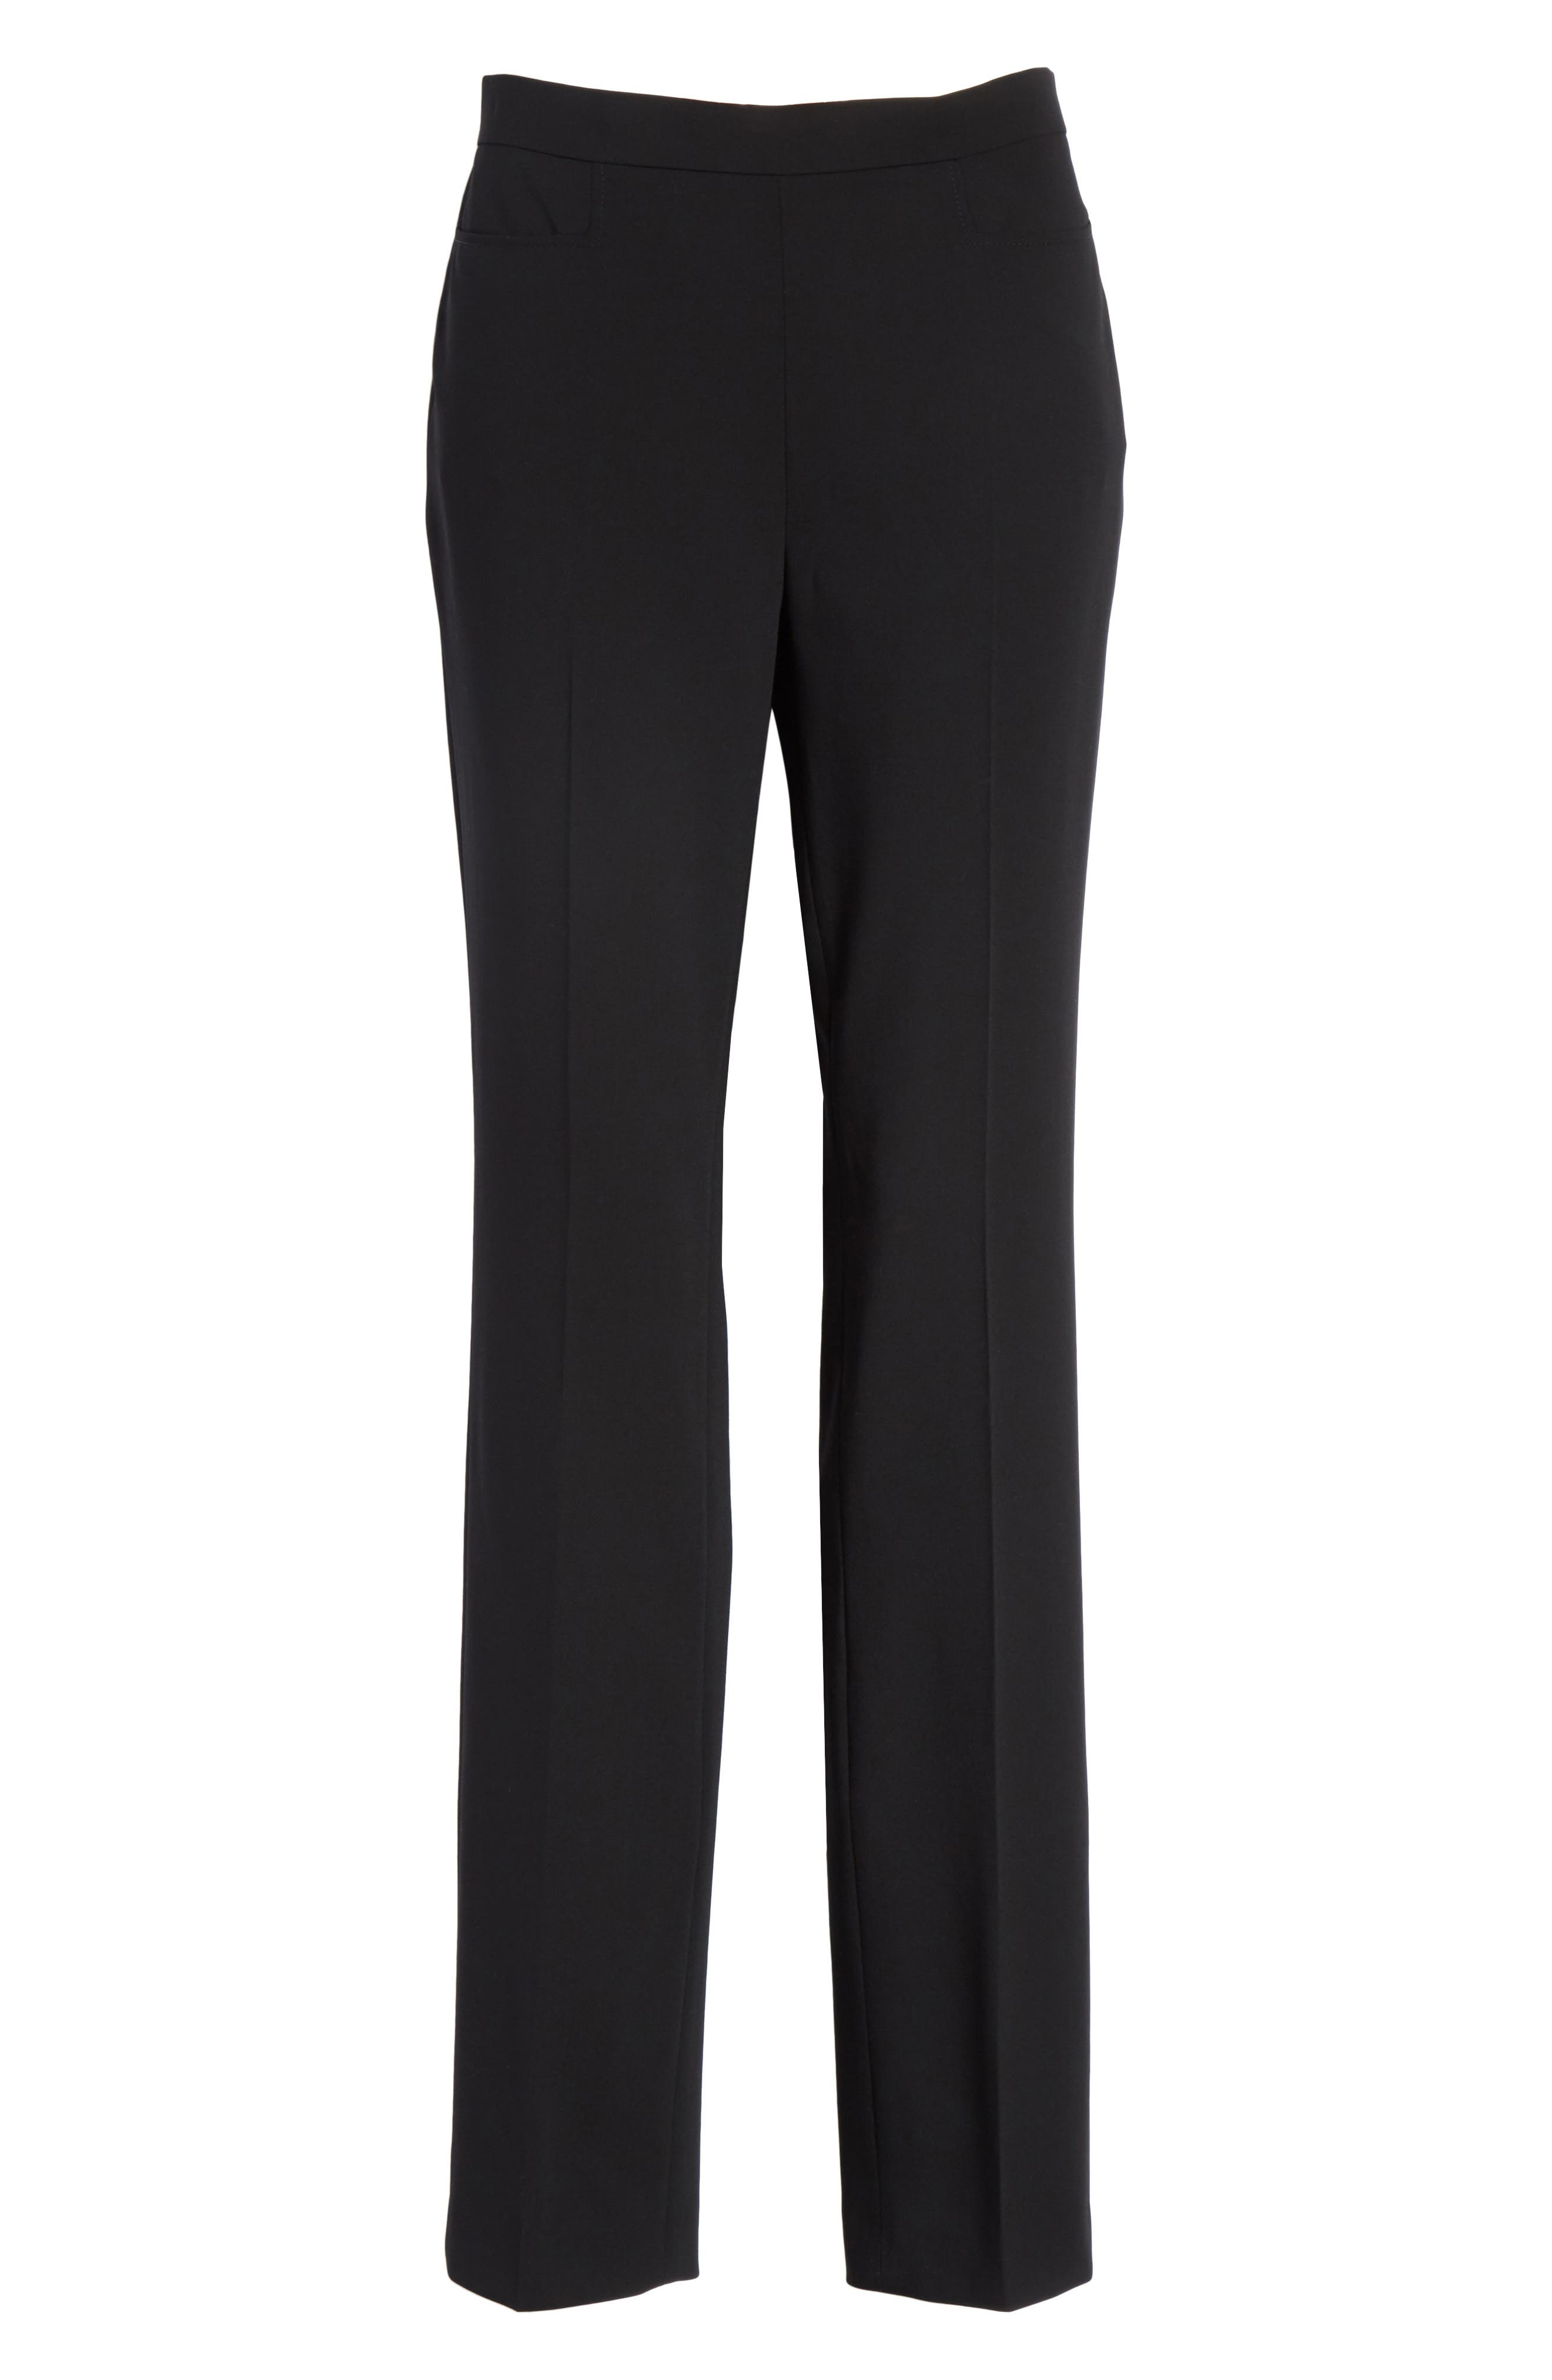 Francoise Wool Straight Leg Pants,                             Alternate thumbnail 6, color,                             Black